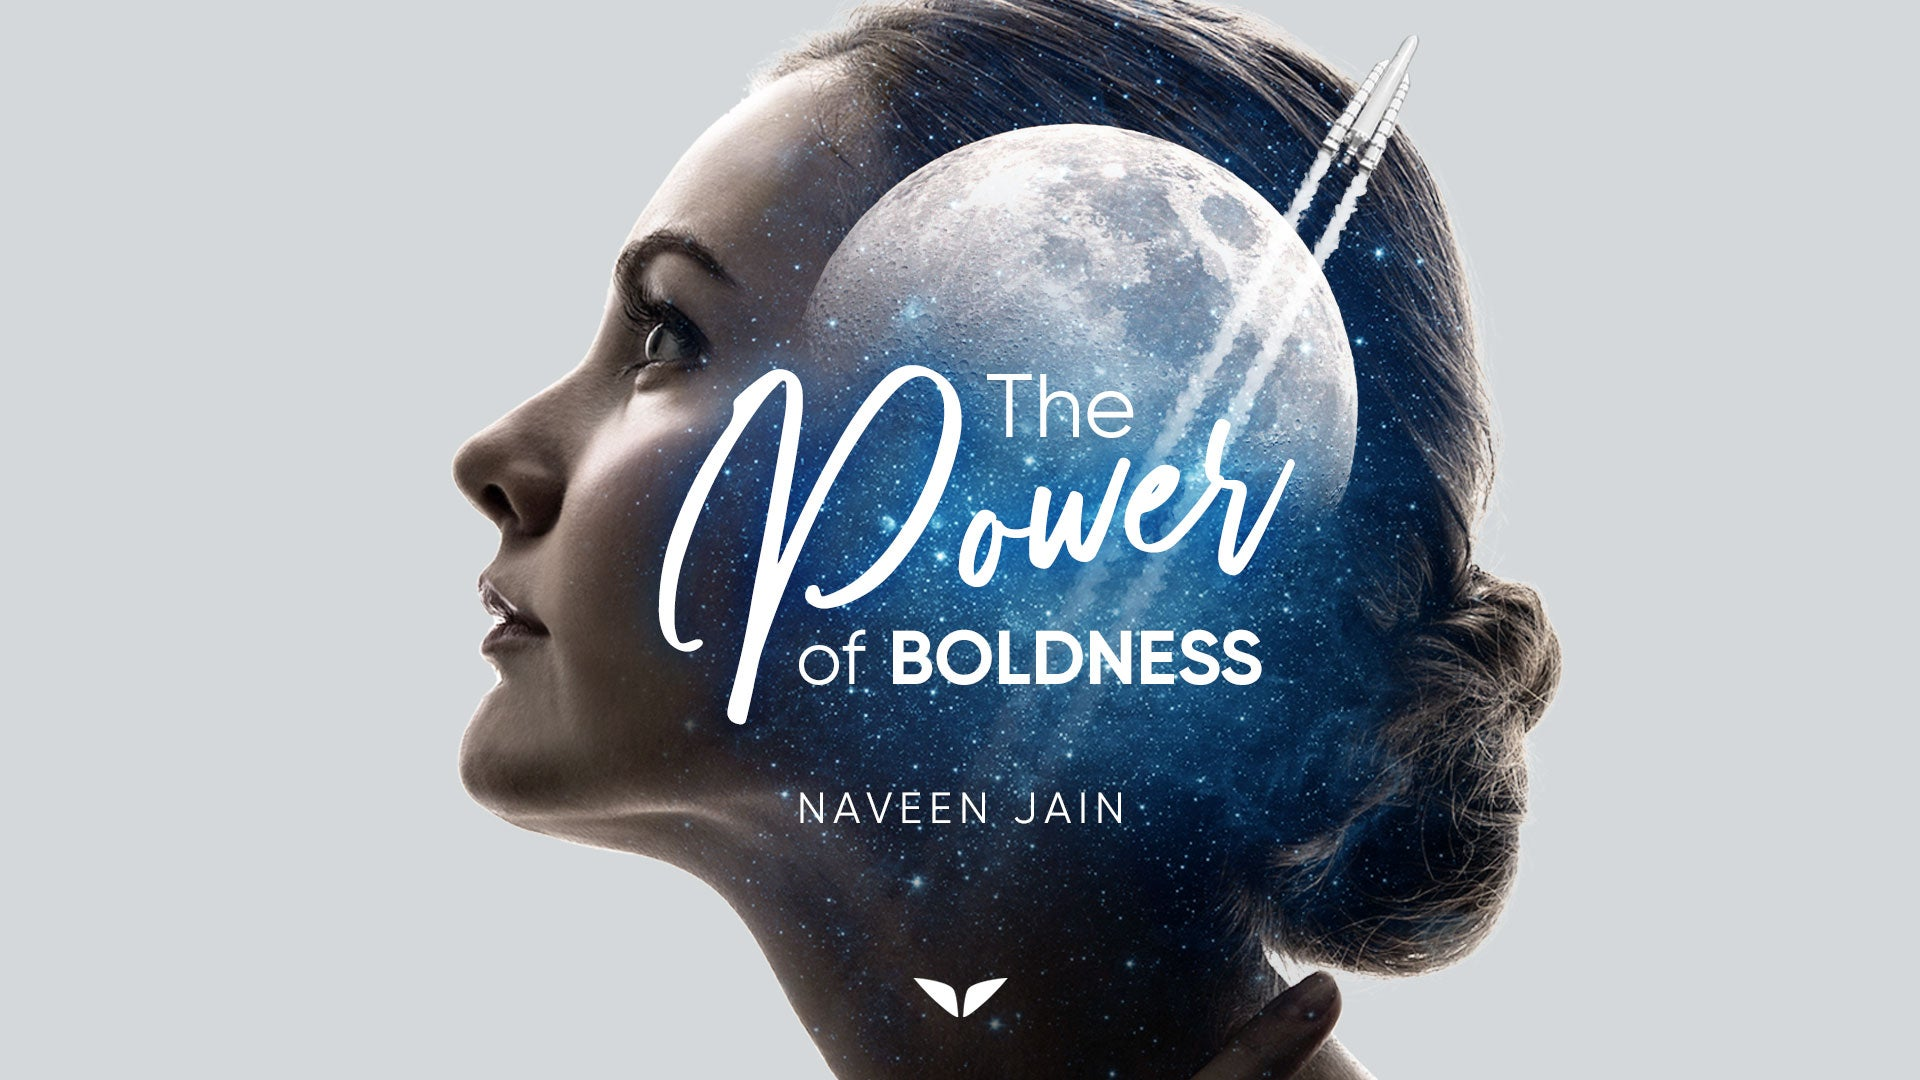 The Power of Boldness